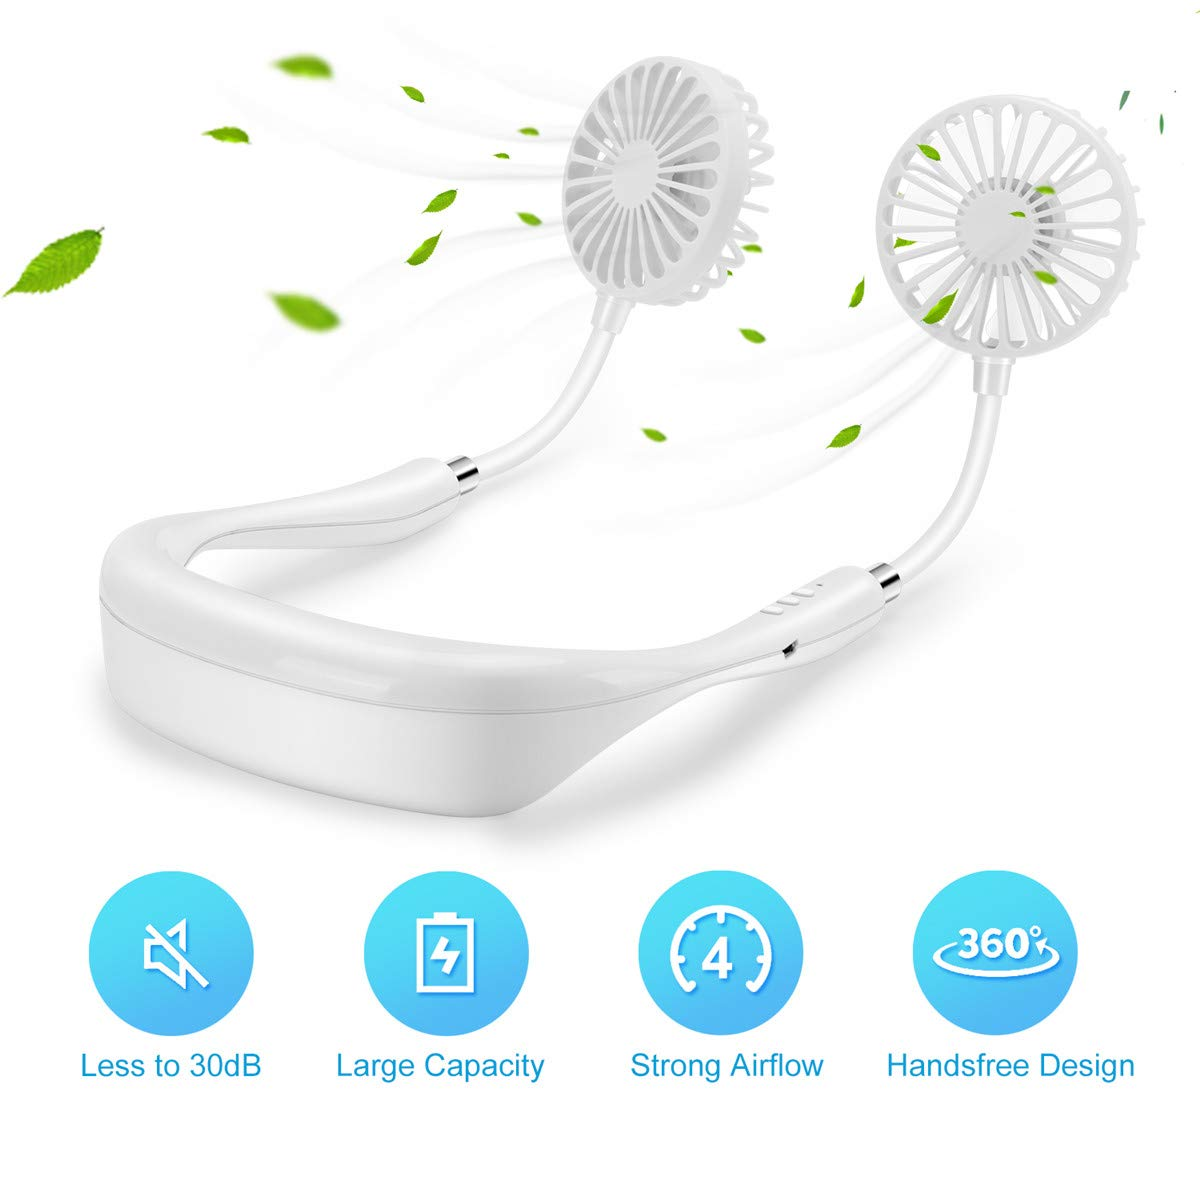 Portable Hanging Neck Fan, Handsfree Personal USB Small Neck Fan with 2000mAh Battery 12-Hr Working Time 360 Bendable Head Low Noise, Mini Fan Around Neck for Sports Running Travel Camping White